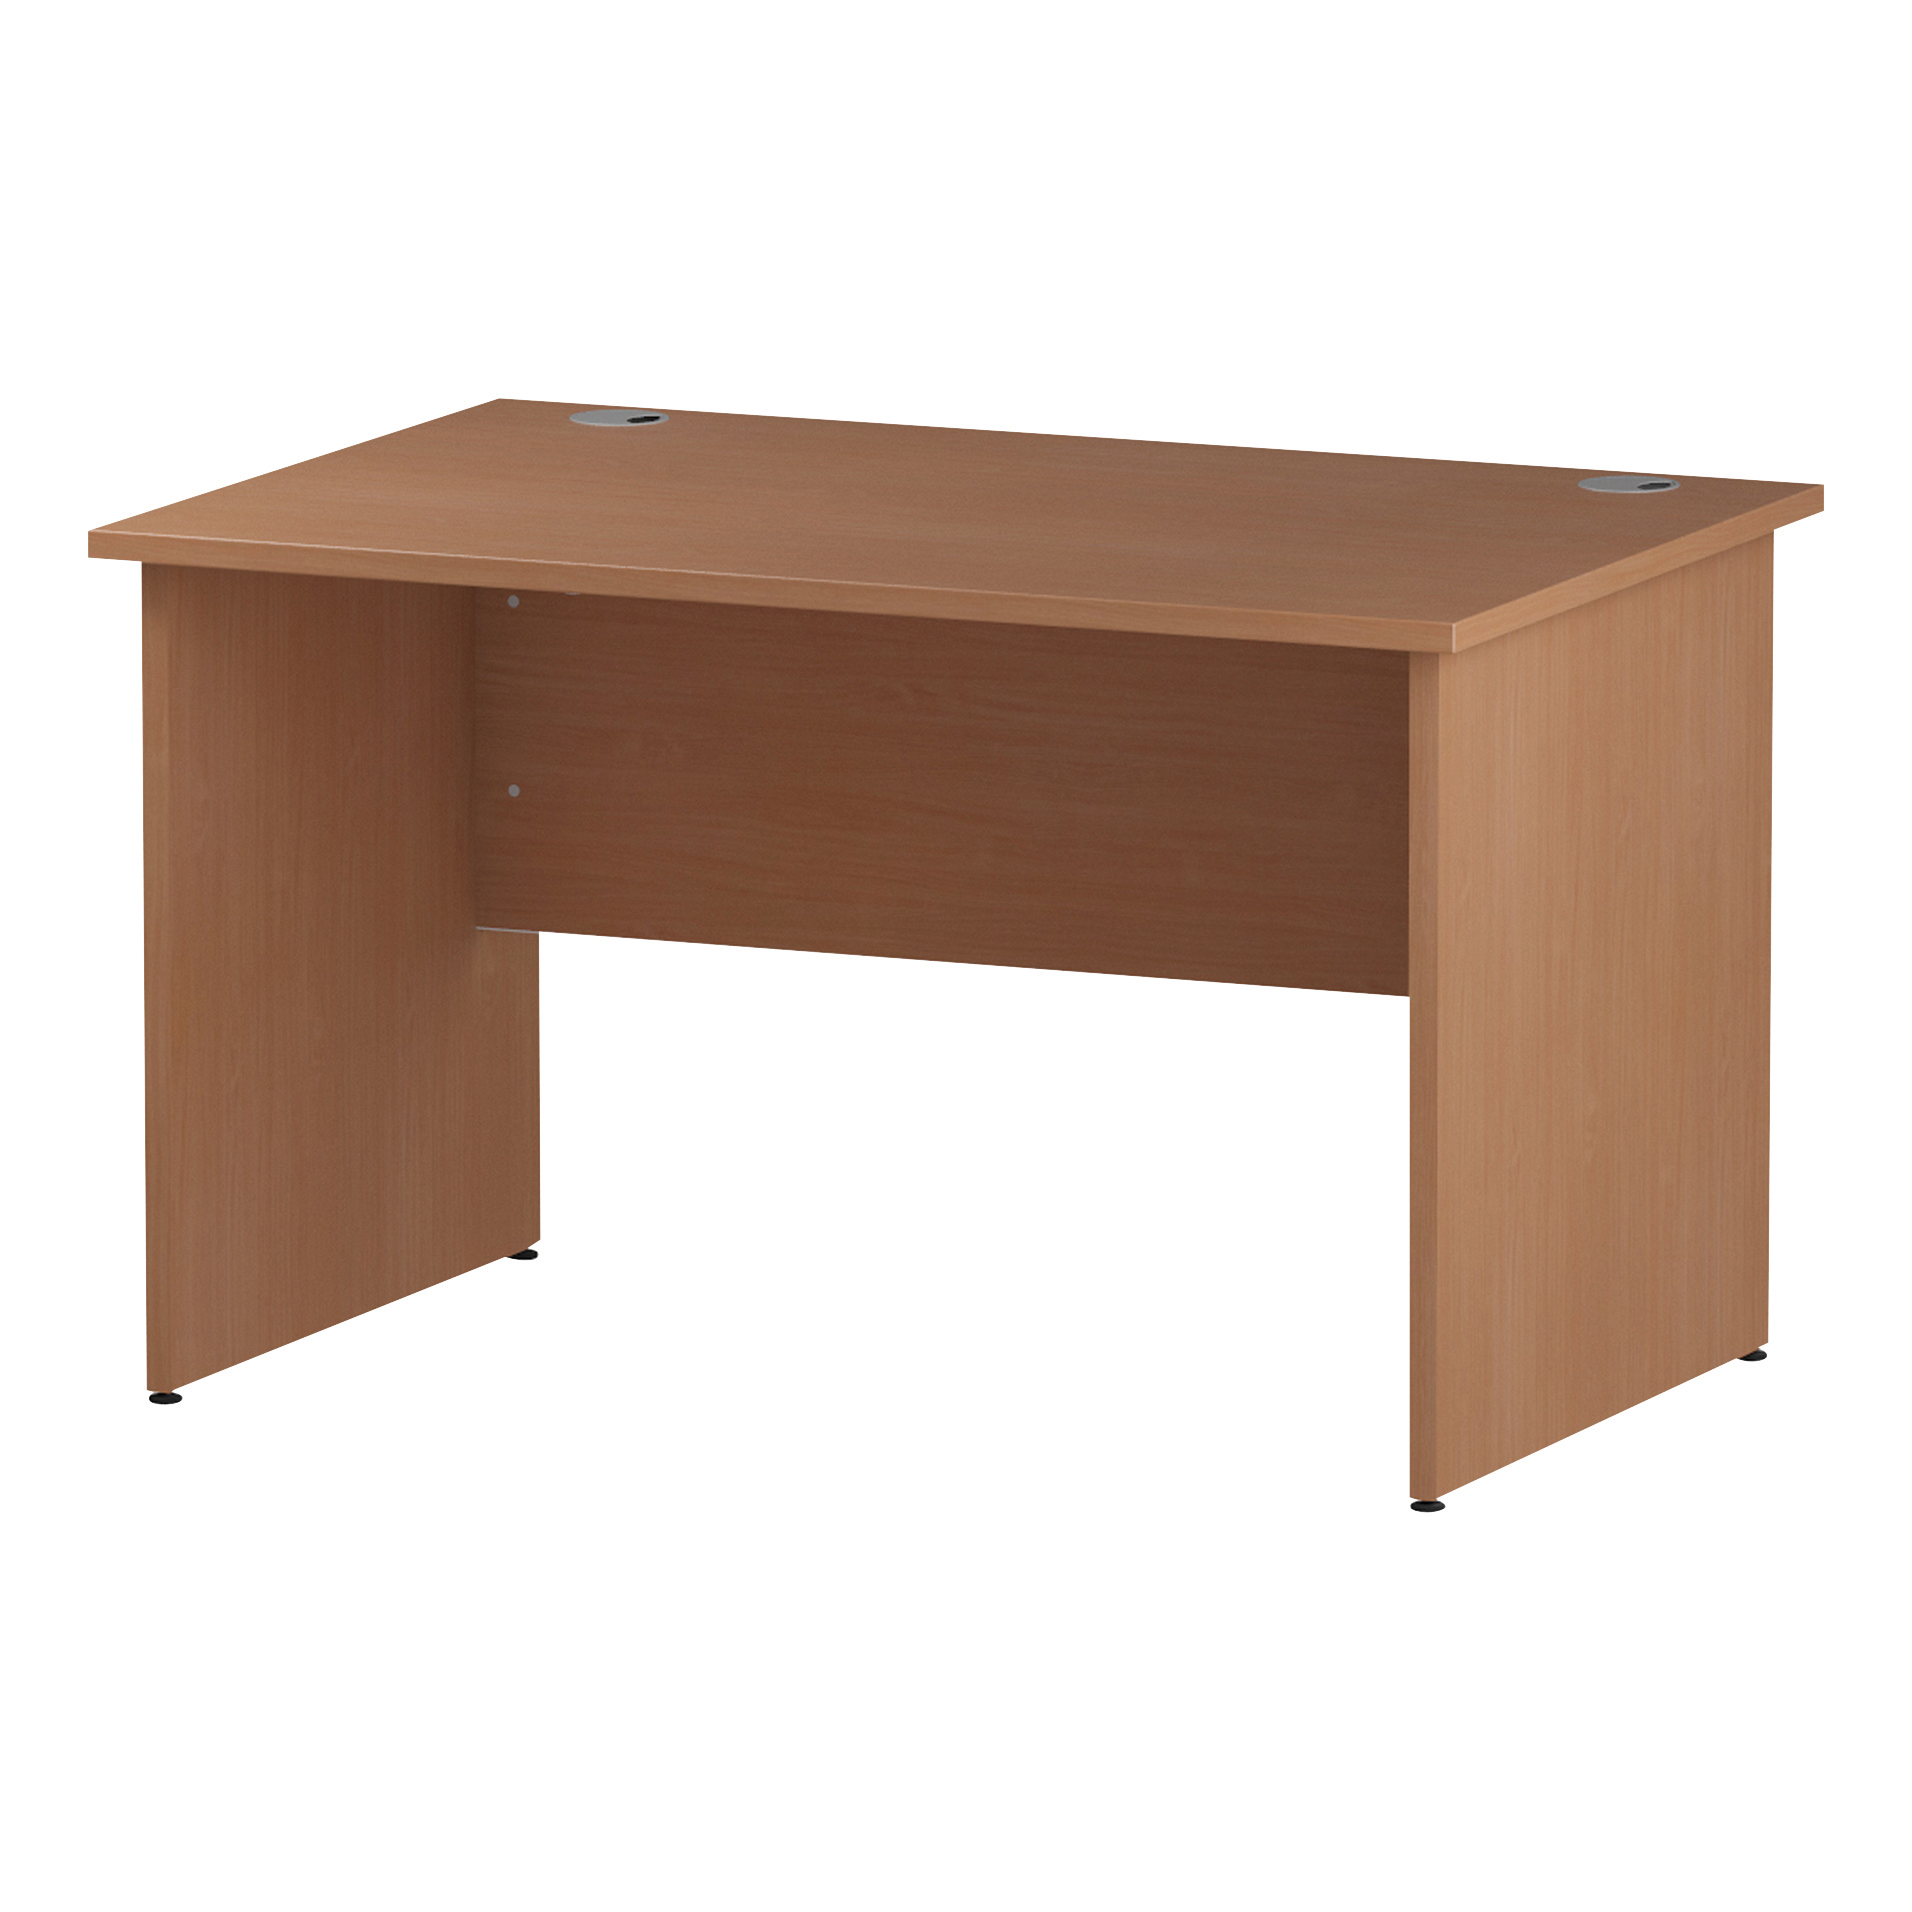 Trexus Rectangular Desk Panel End Leg 1200x800mm Beech Ref I000371